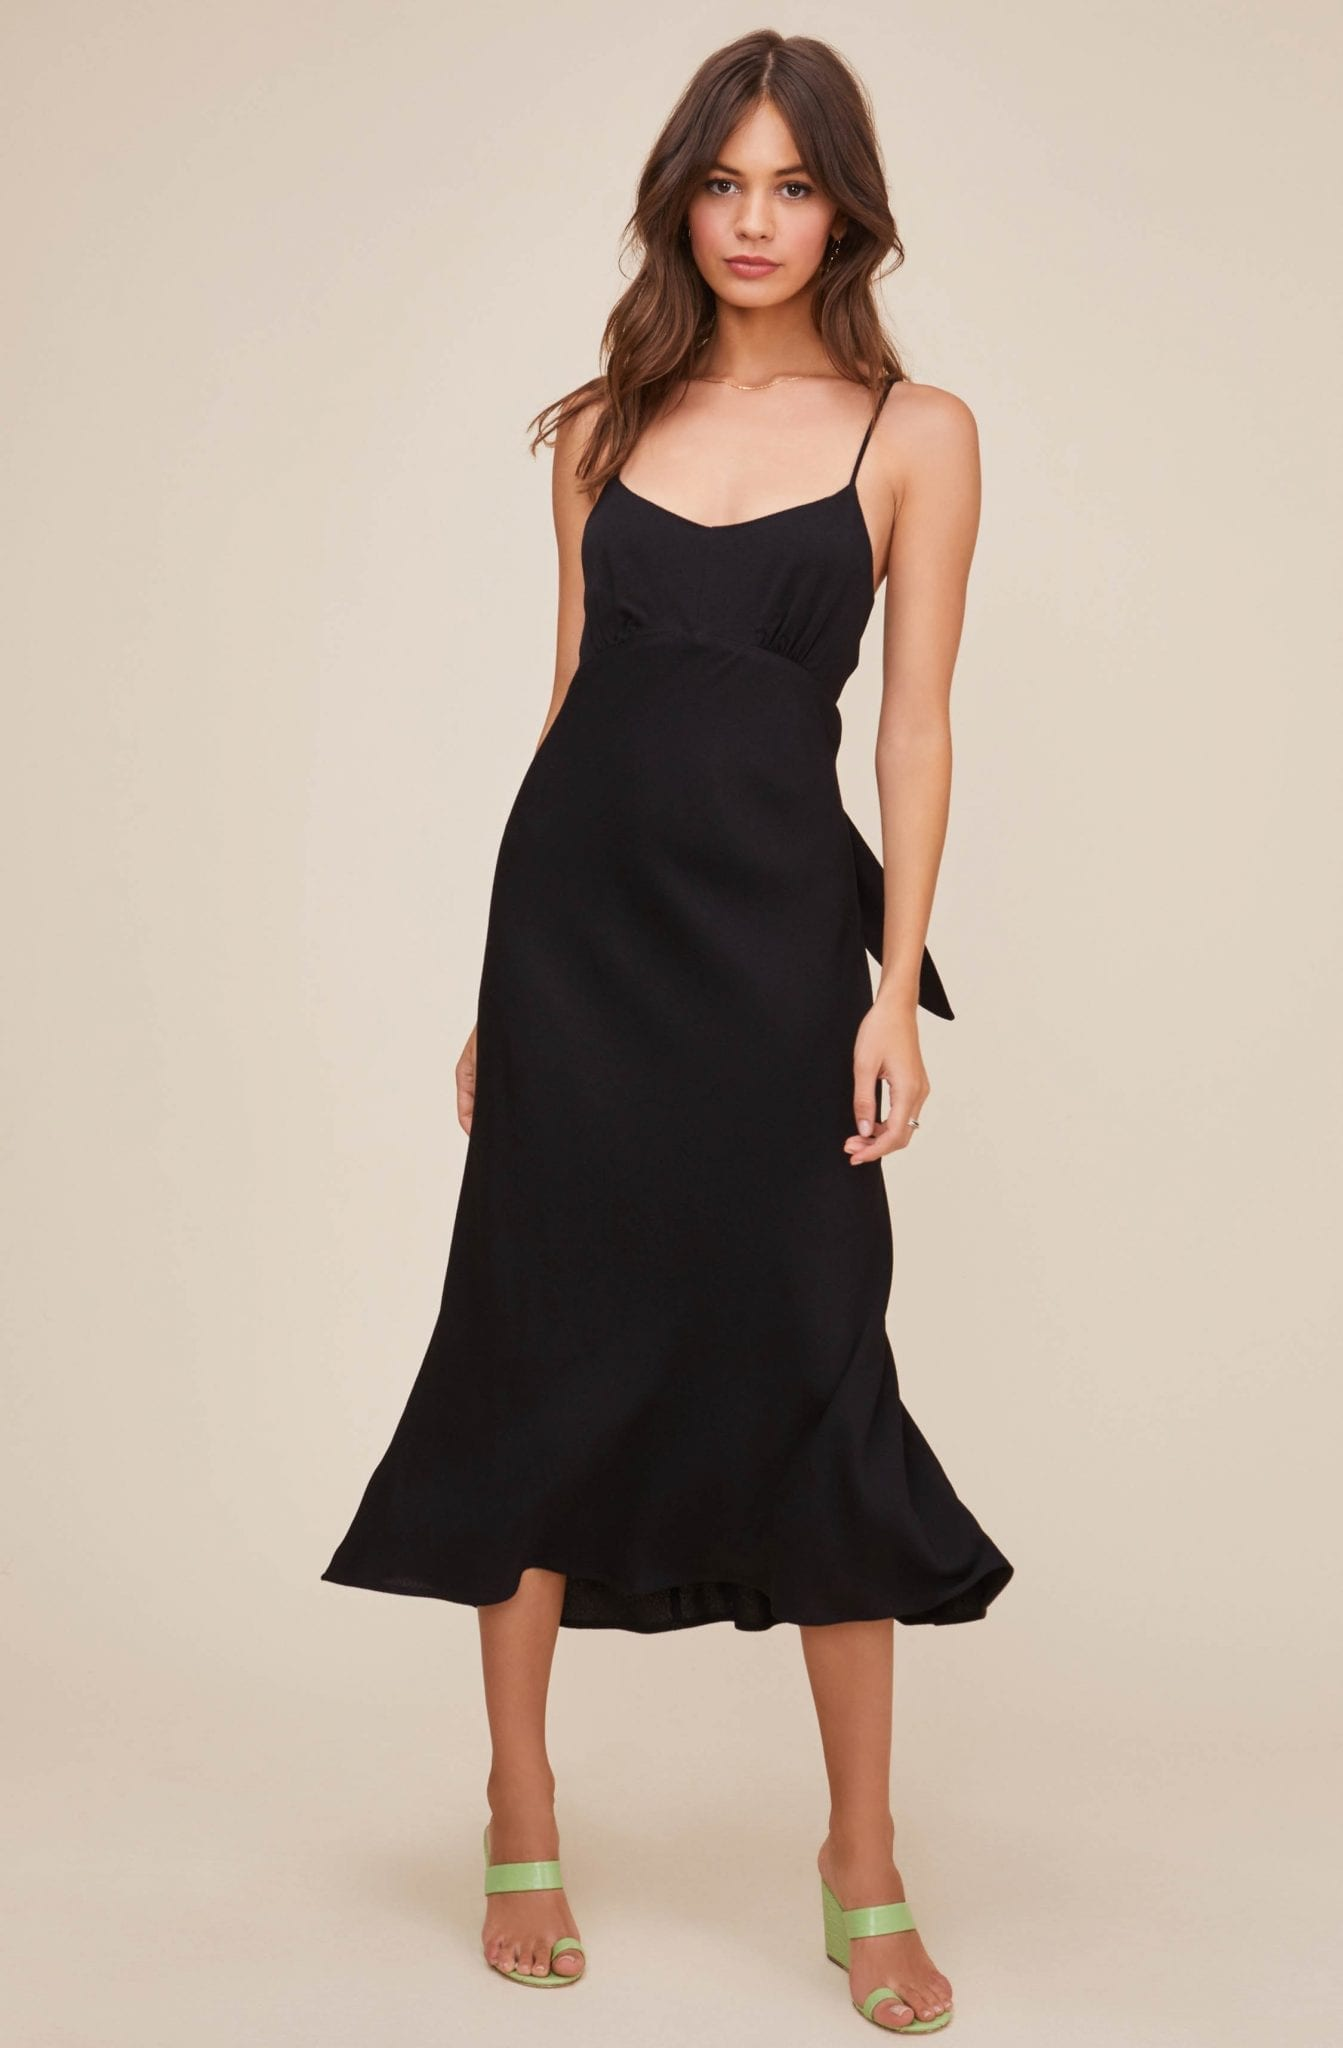 ASTRTHELABEL Charisma Midi Dress